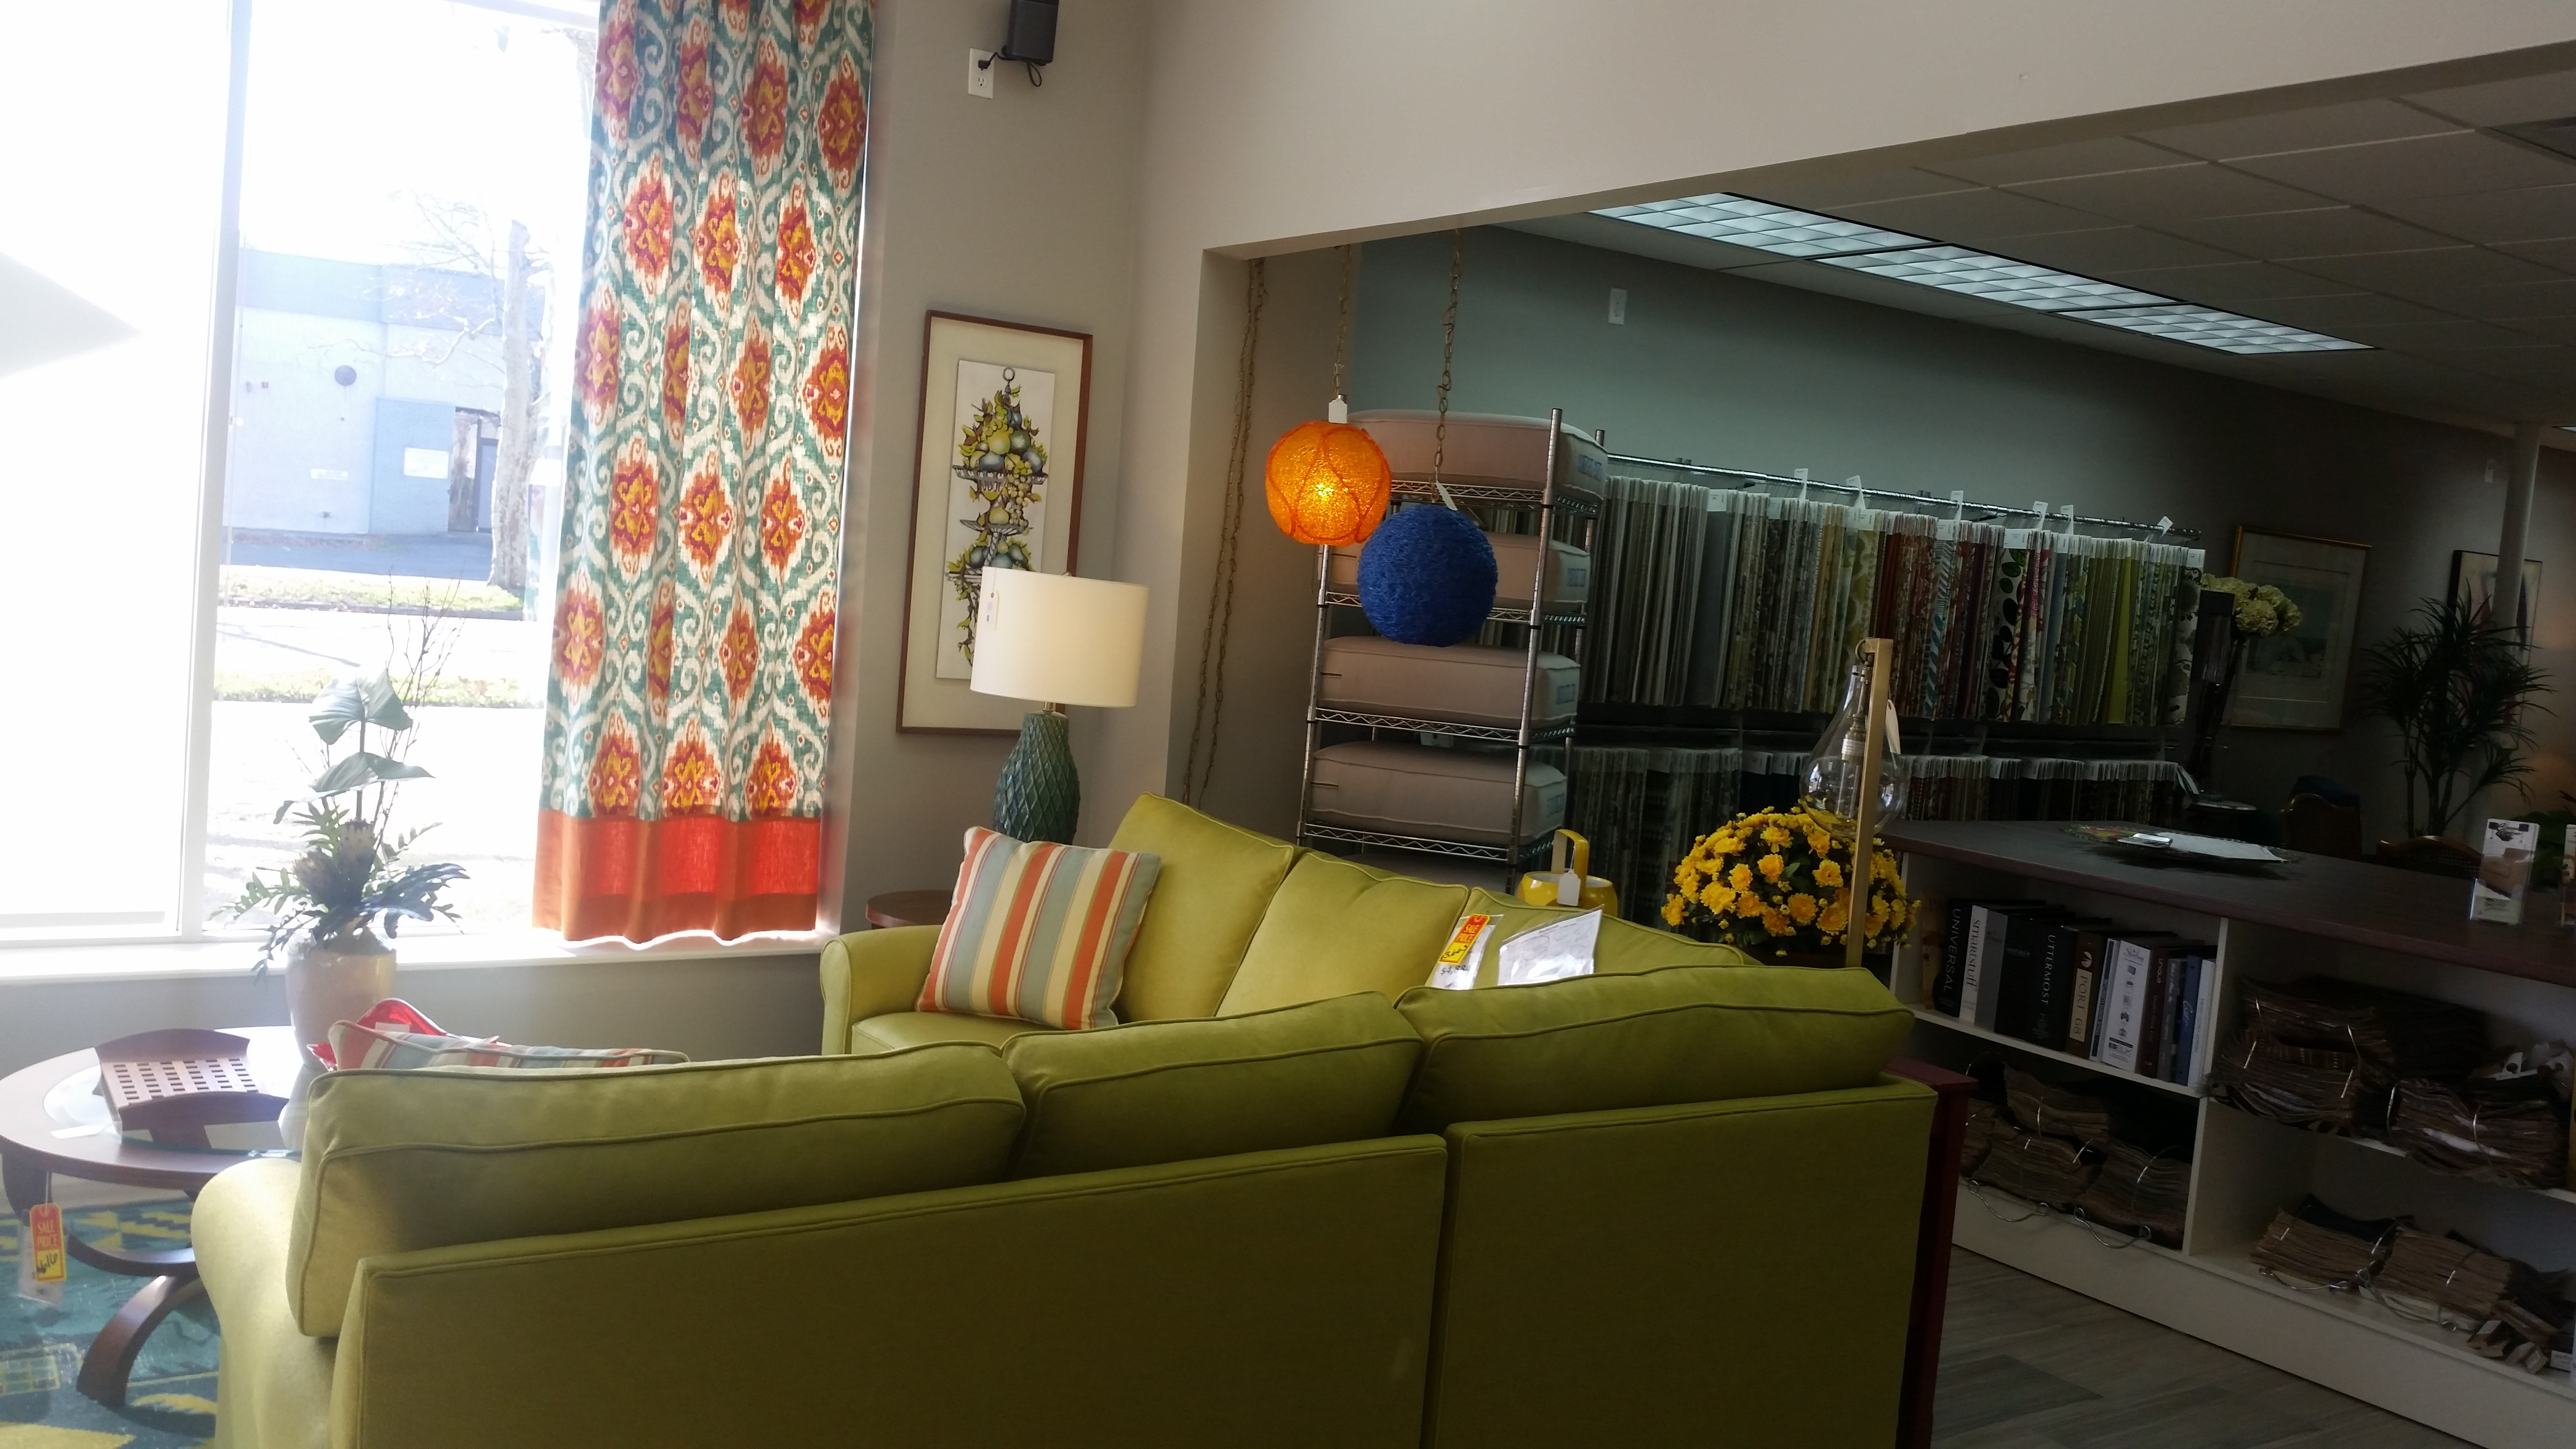 Parkemoor Home Furnishing And Interior Design Shop Opens Asbury